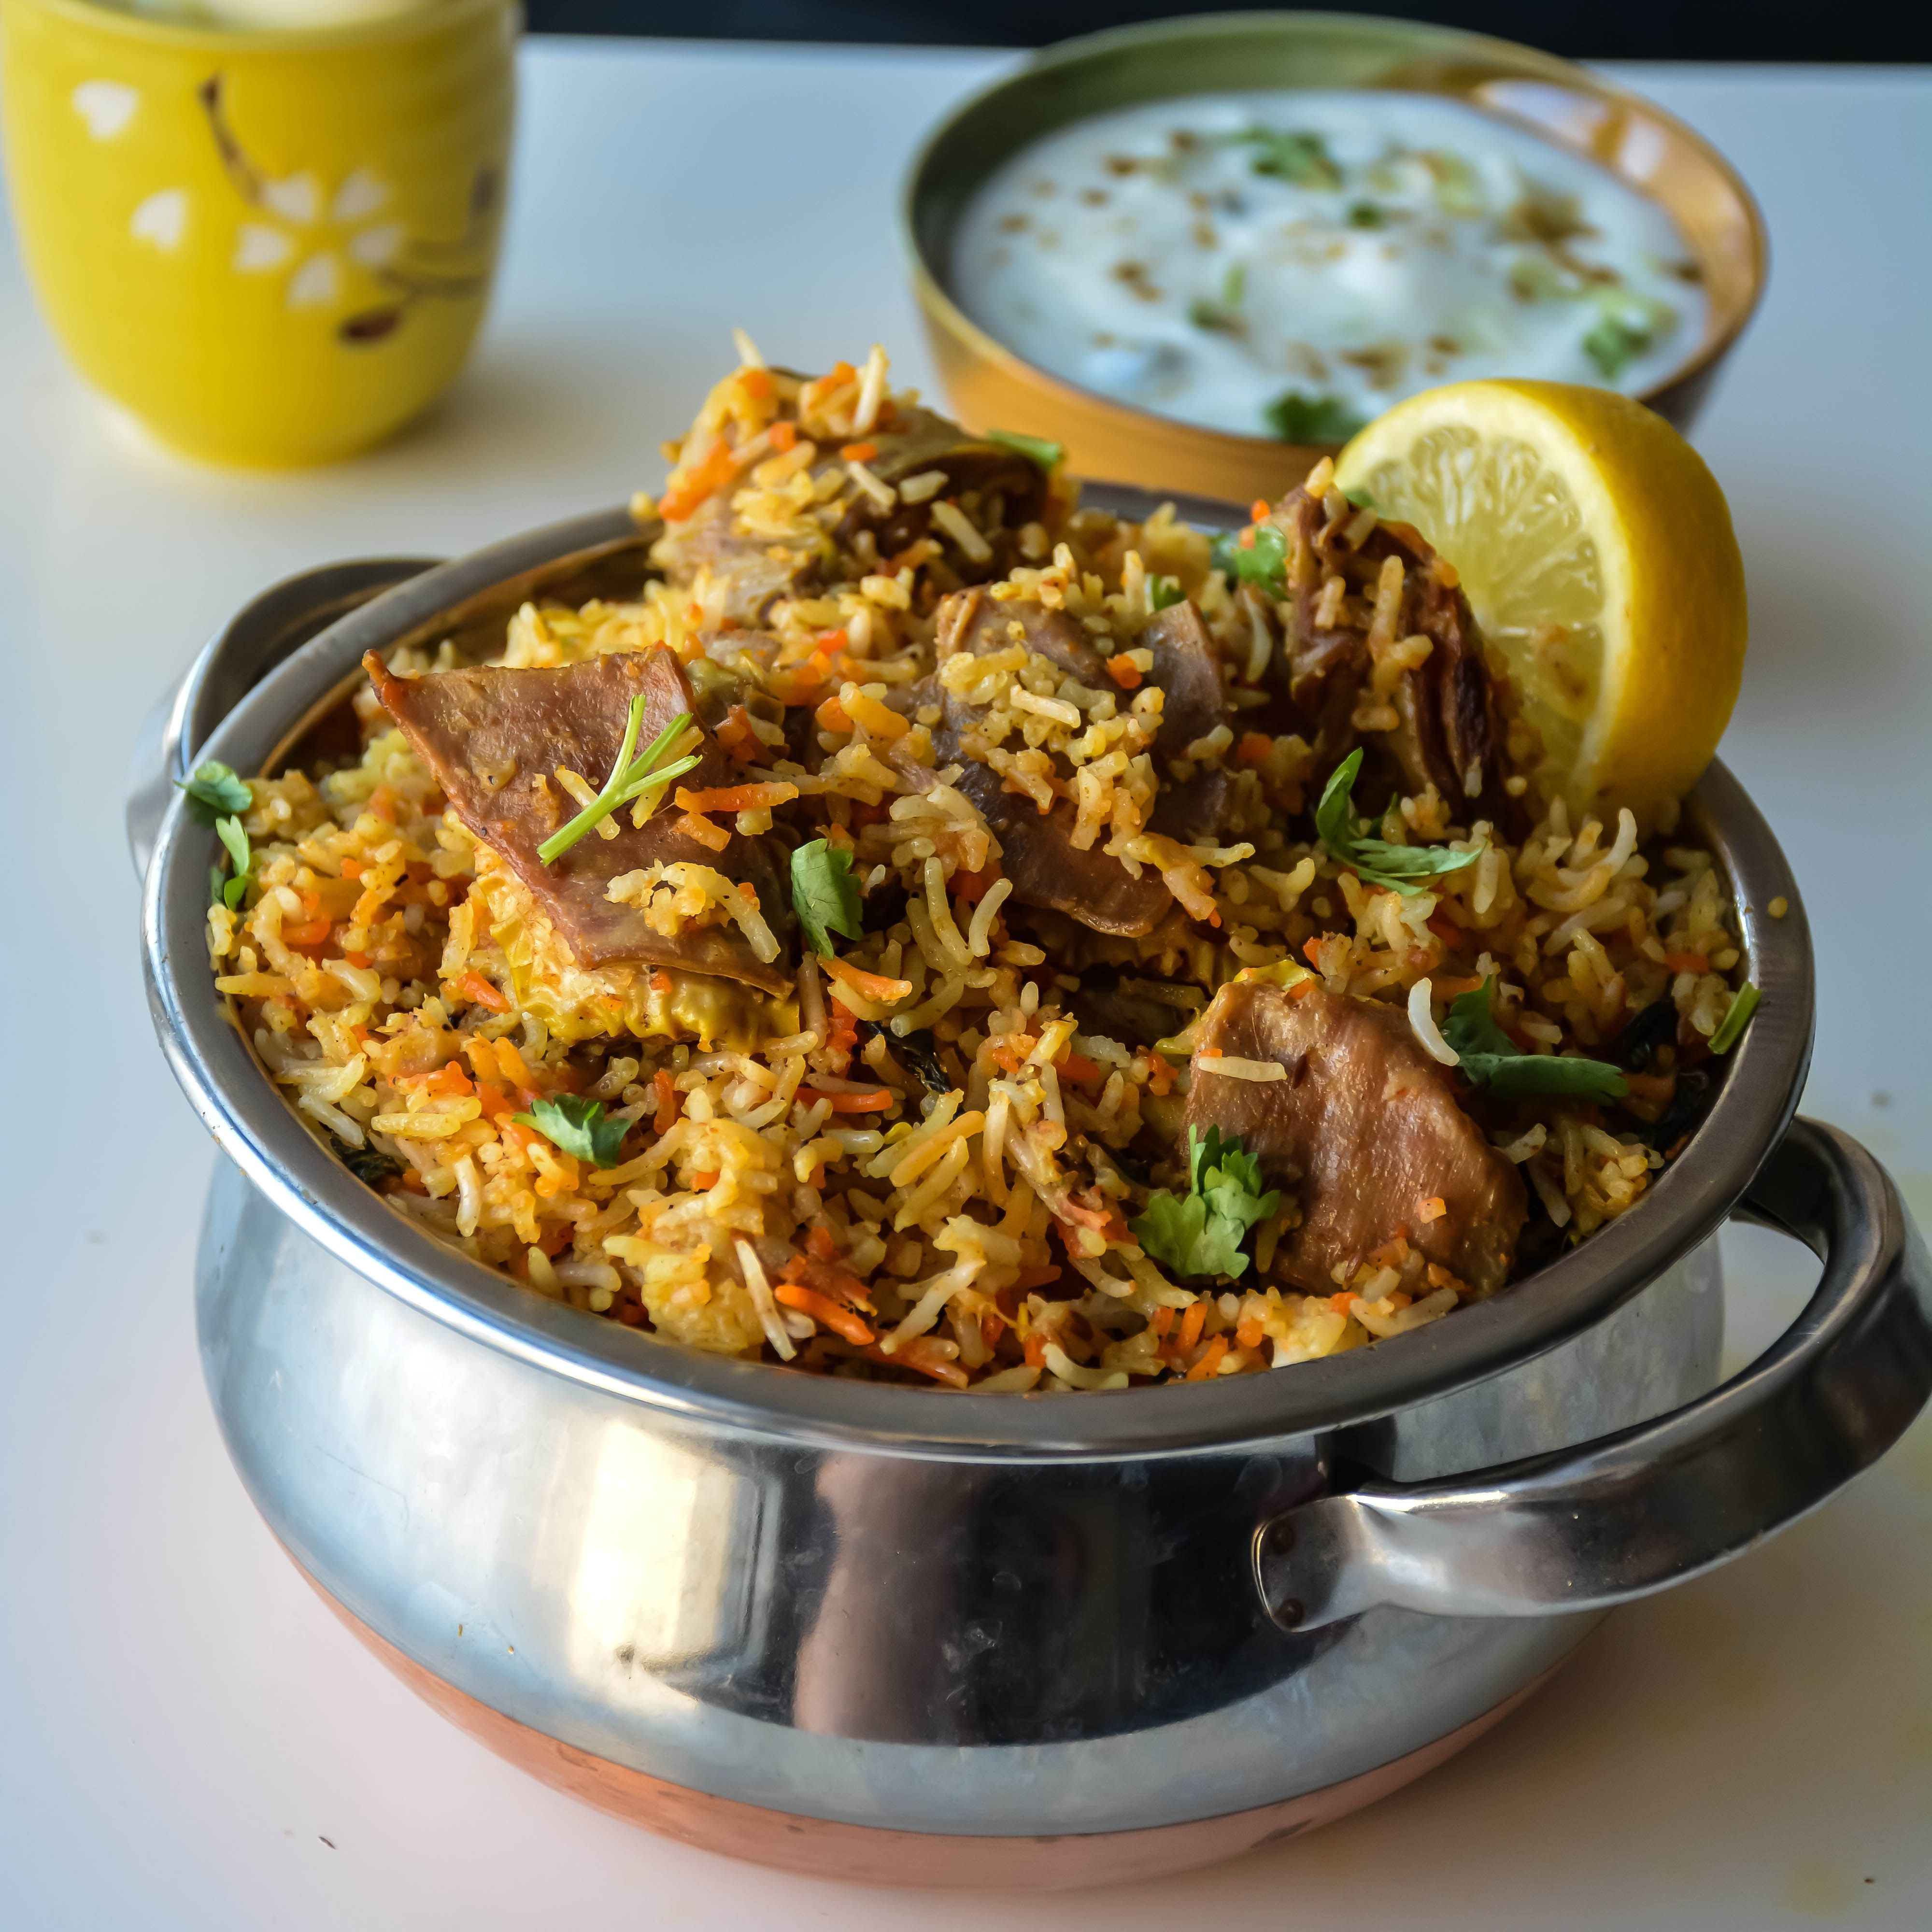 Lambbiryani 5 indian food pinterest biryani lambs and rice rich and delicious biryani made with lamb it is surely a festive dish and this is perfect to cook when you have guests over or make it for dinner parties forumfinder Gallery